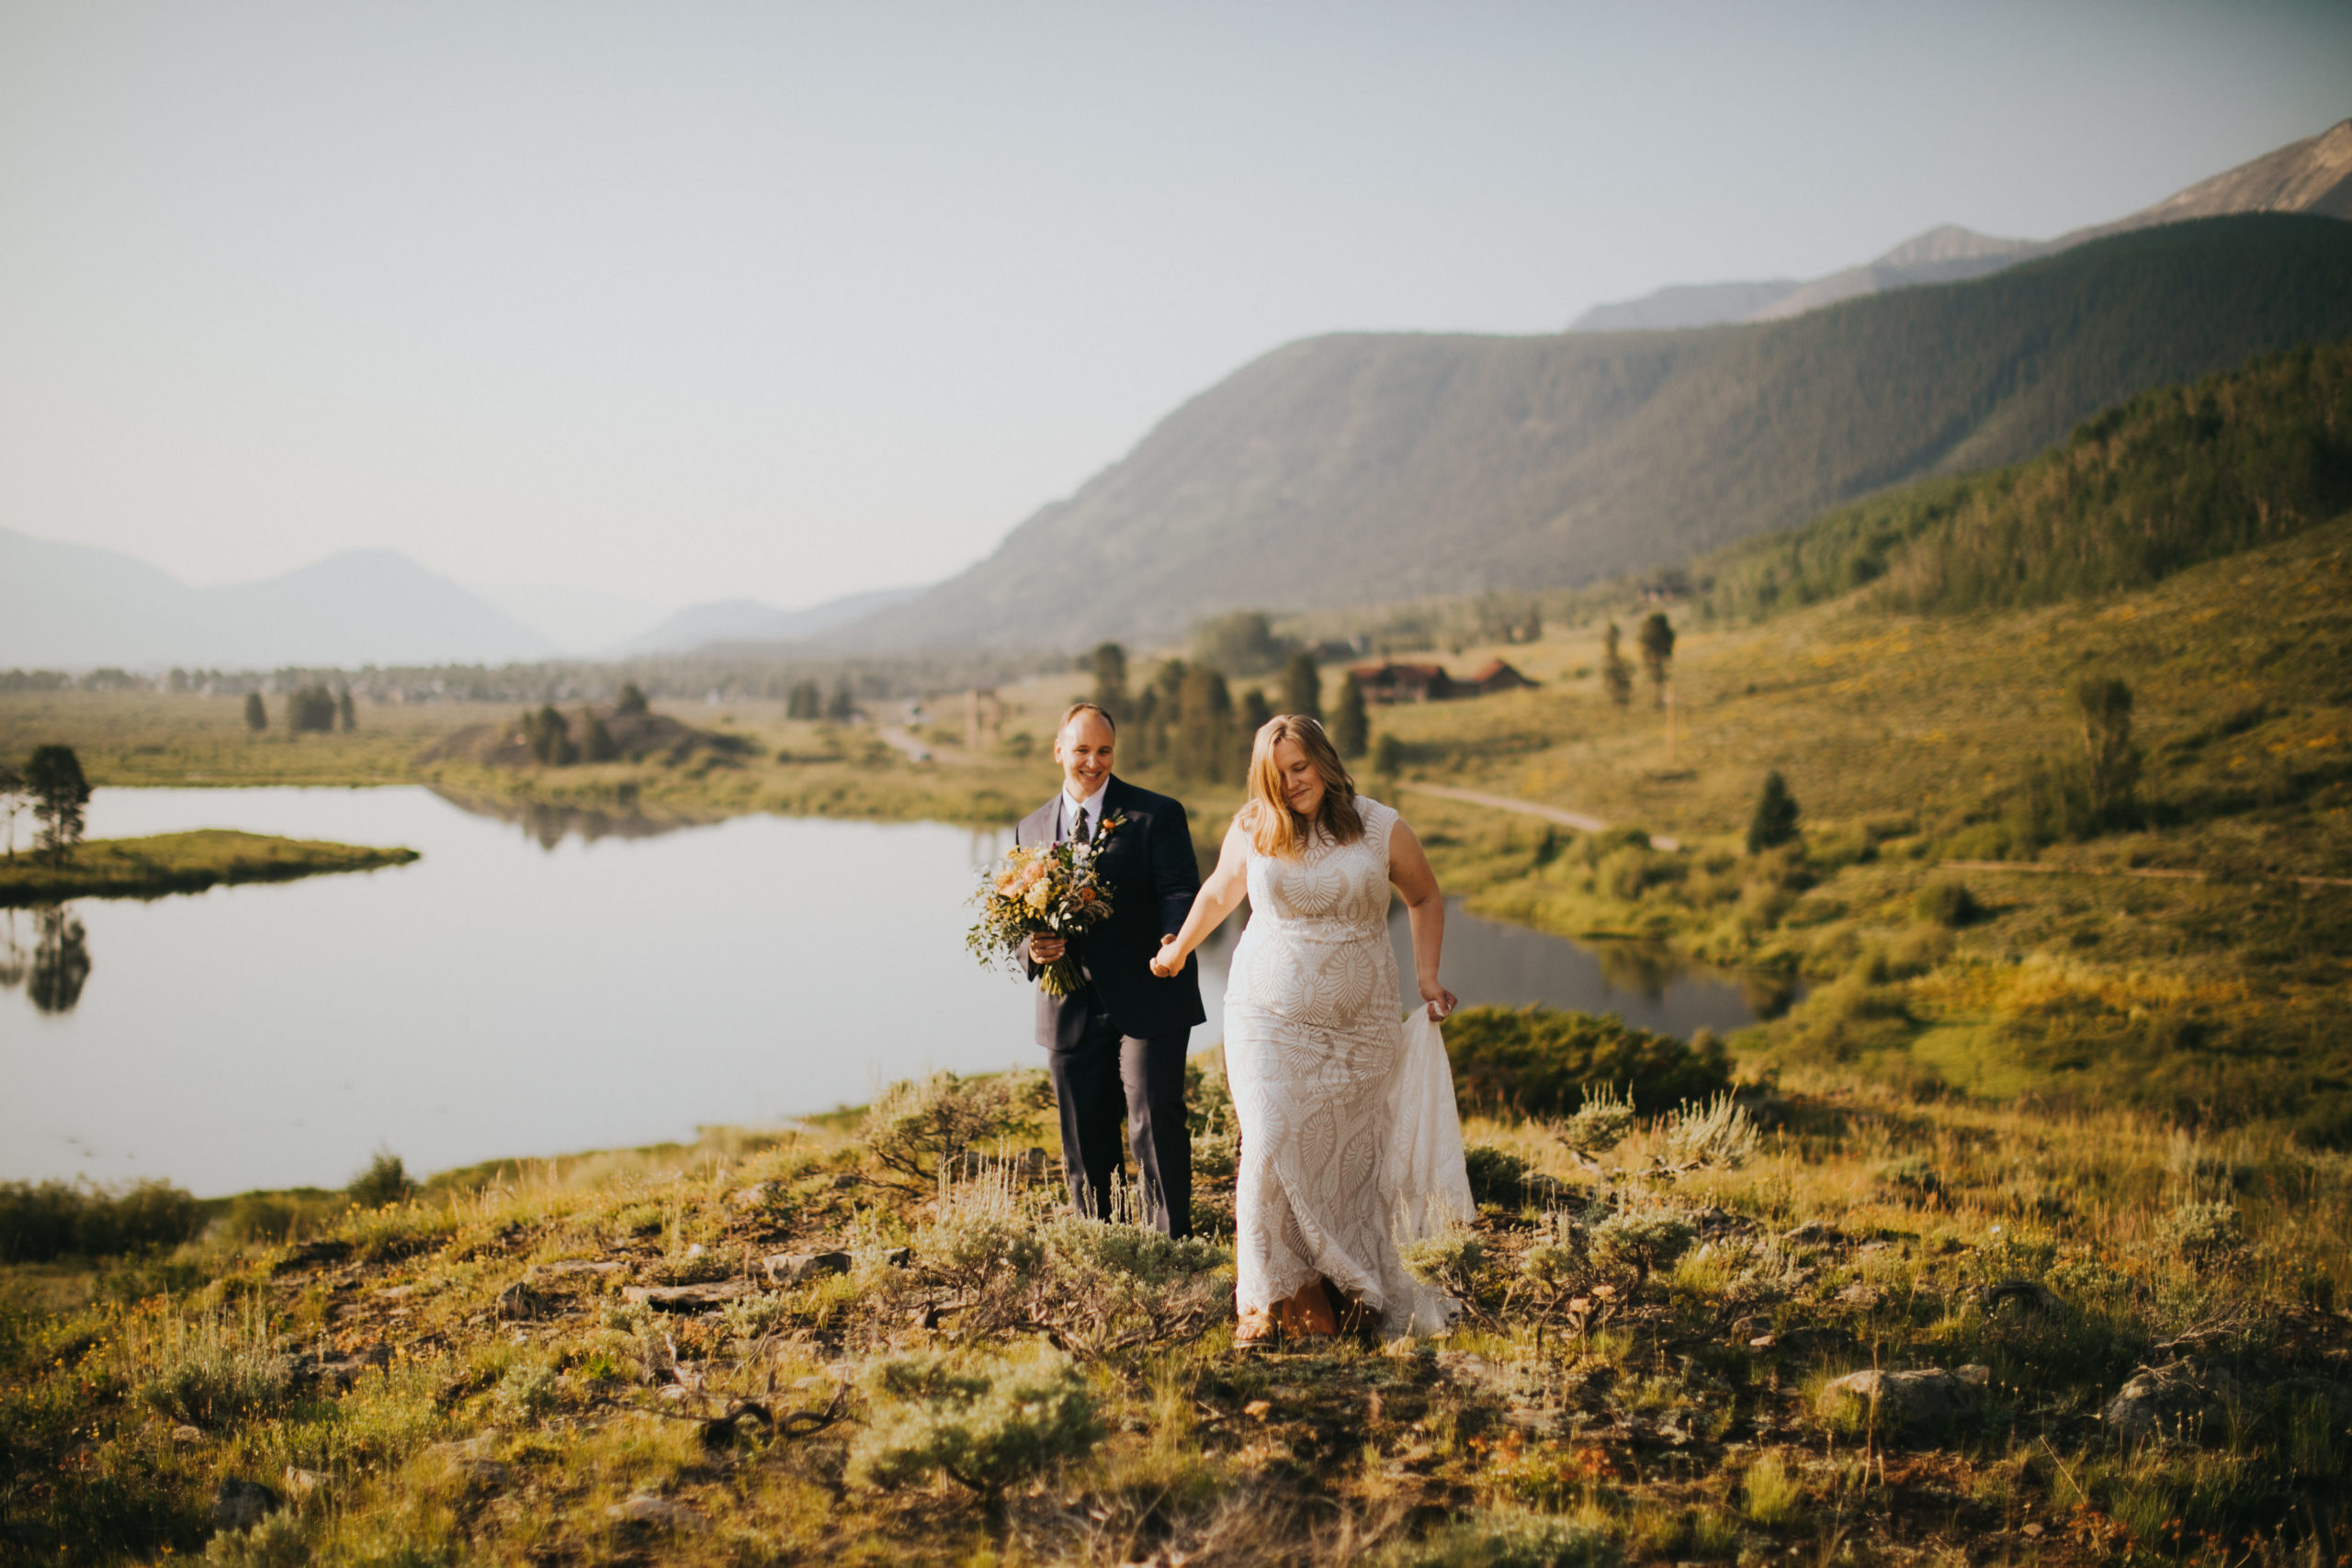 A bride and room walk along a mountainside in Crested Butte, Colorado